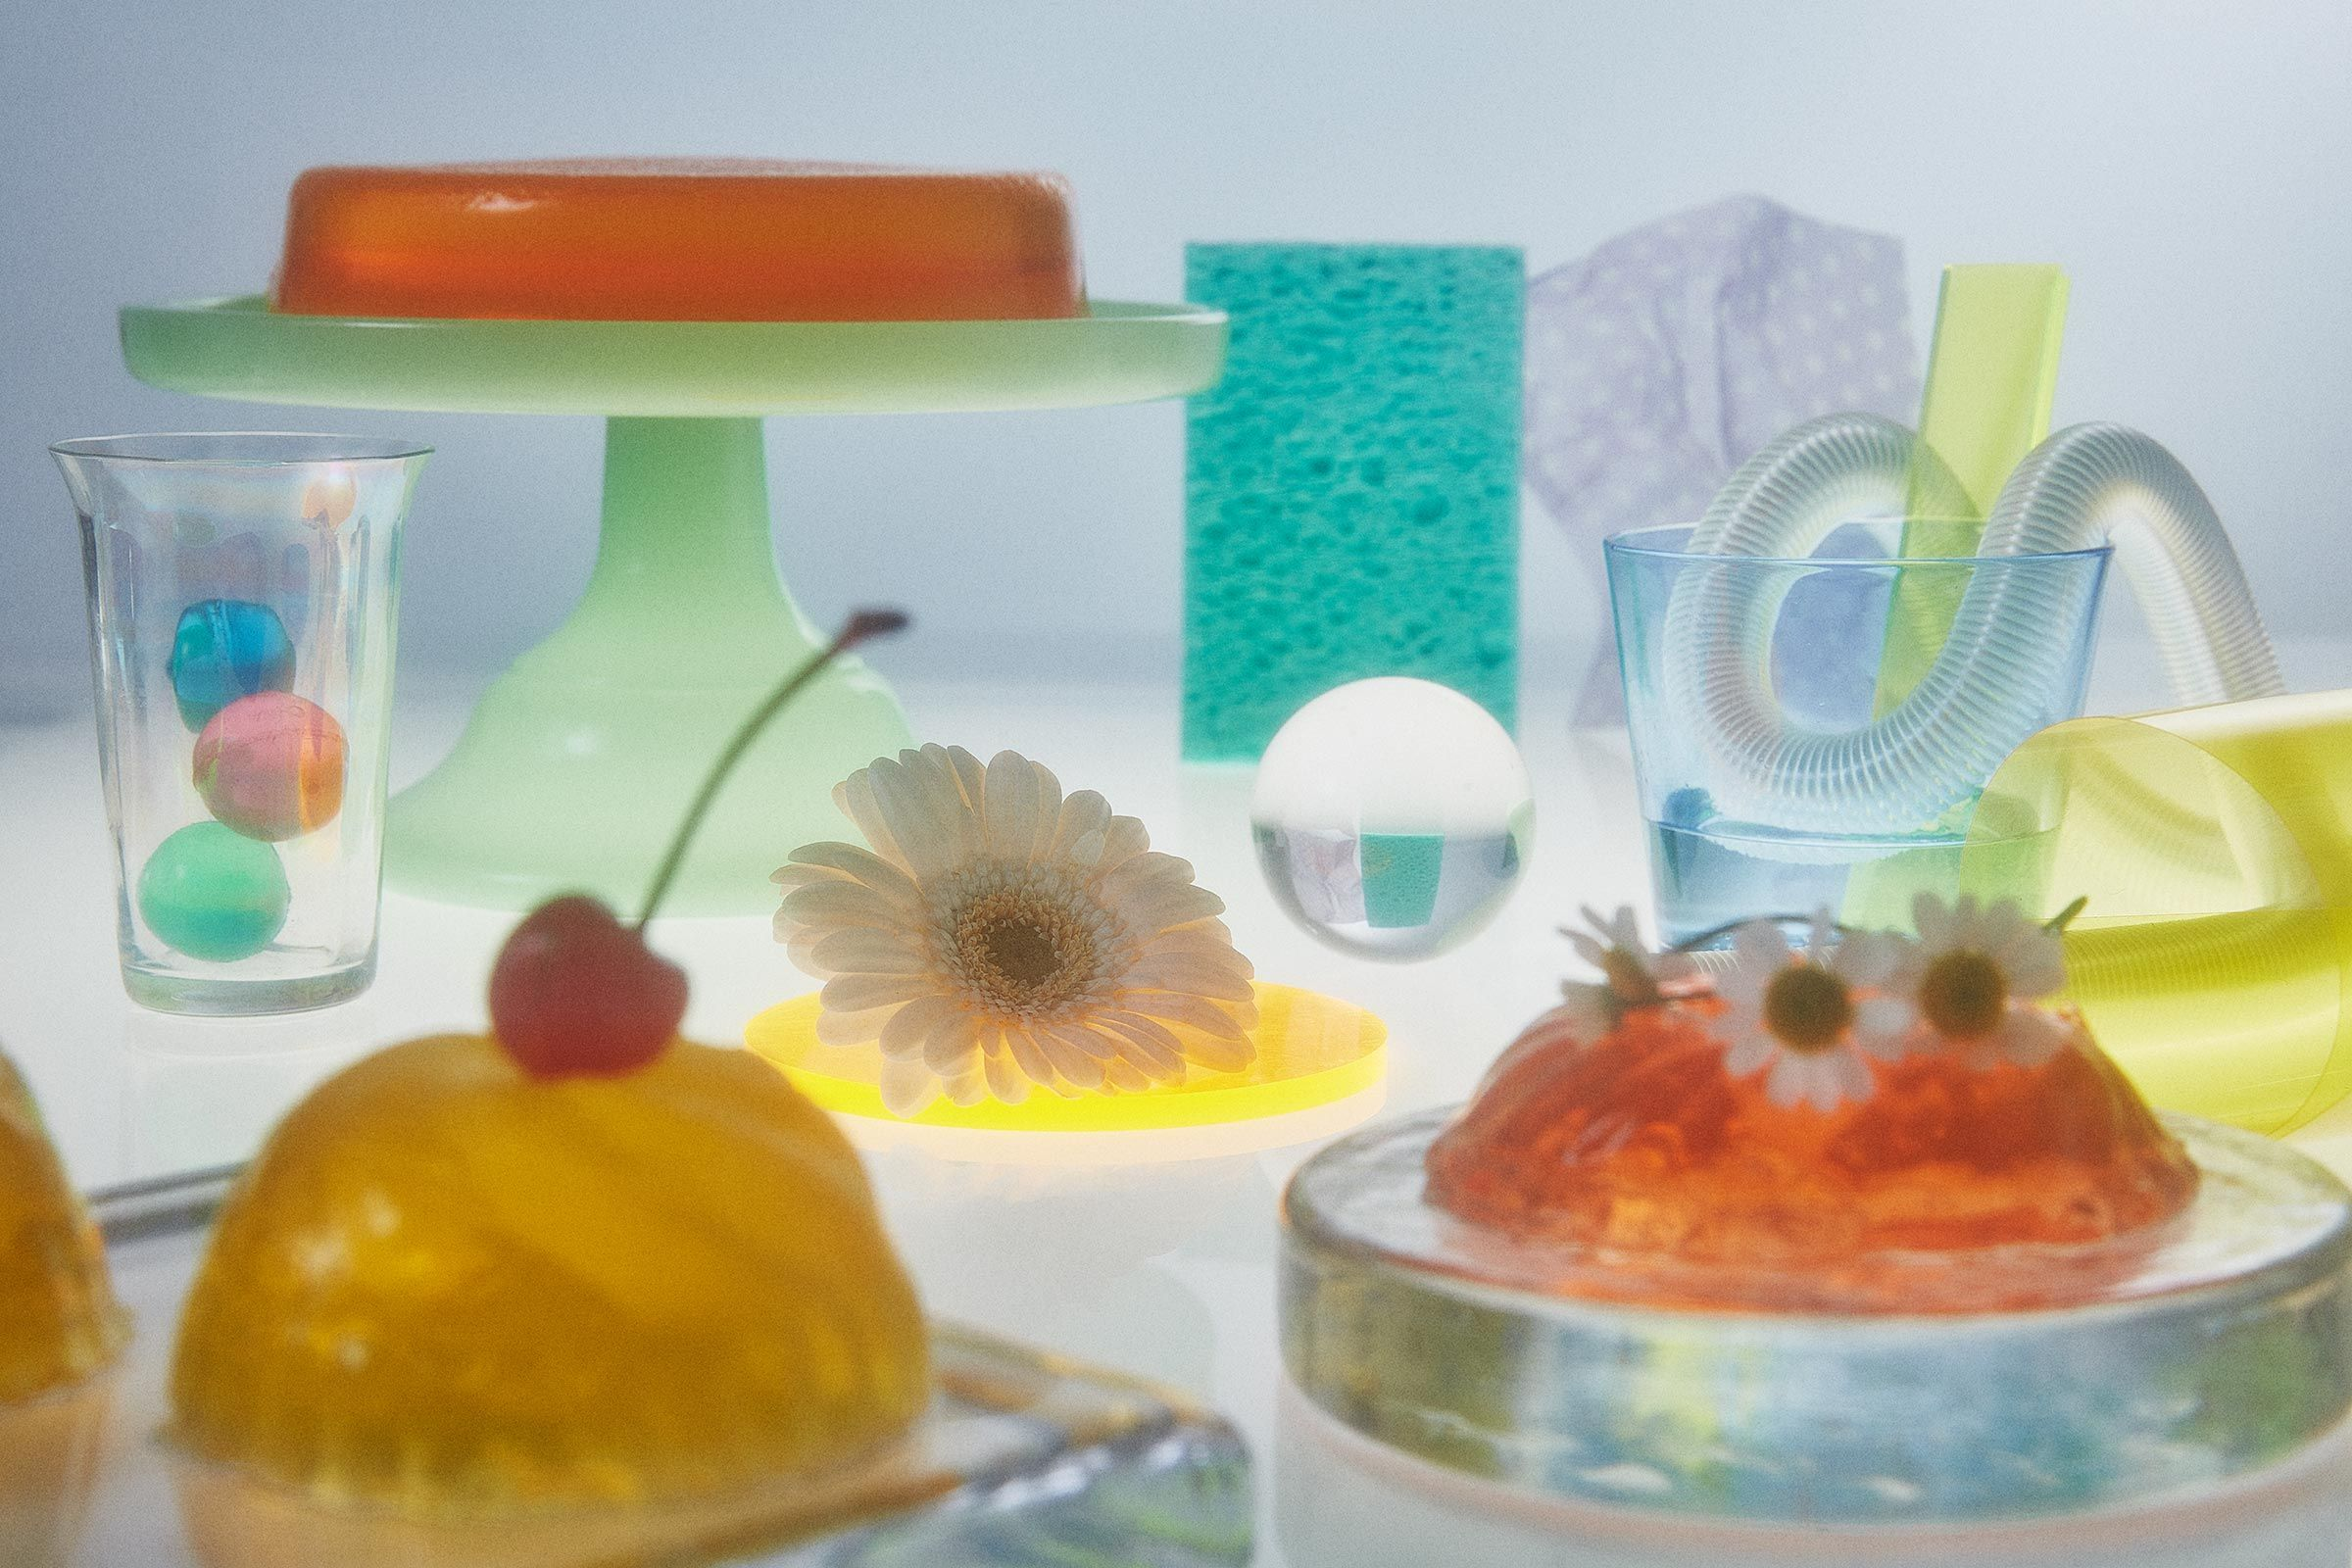 A table packed with flowers, jello, marbles, candy, and plastic samples